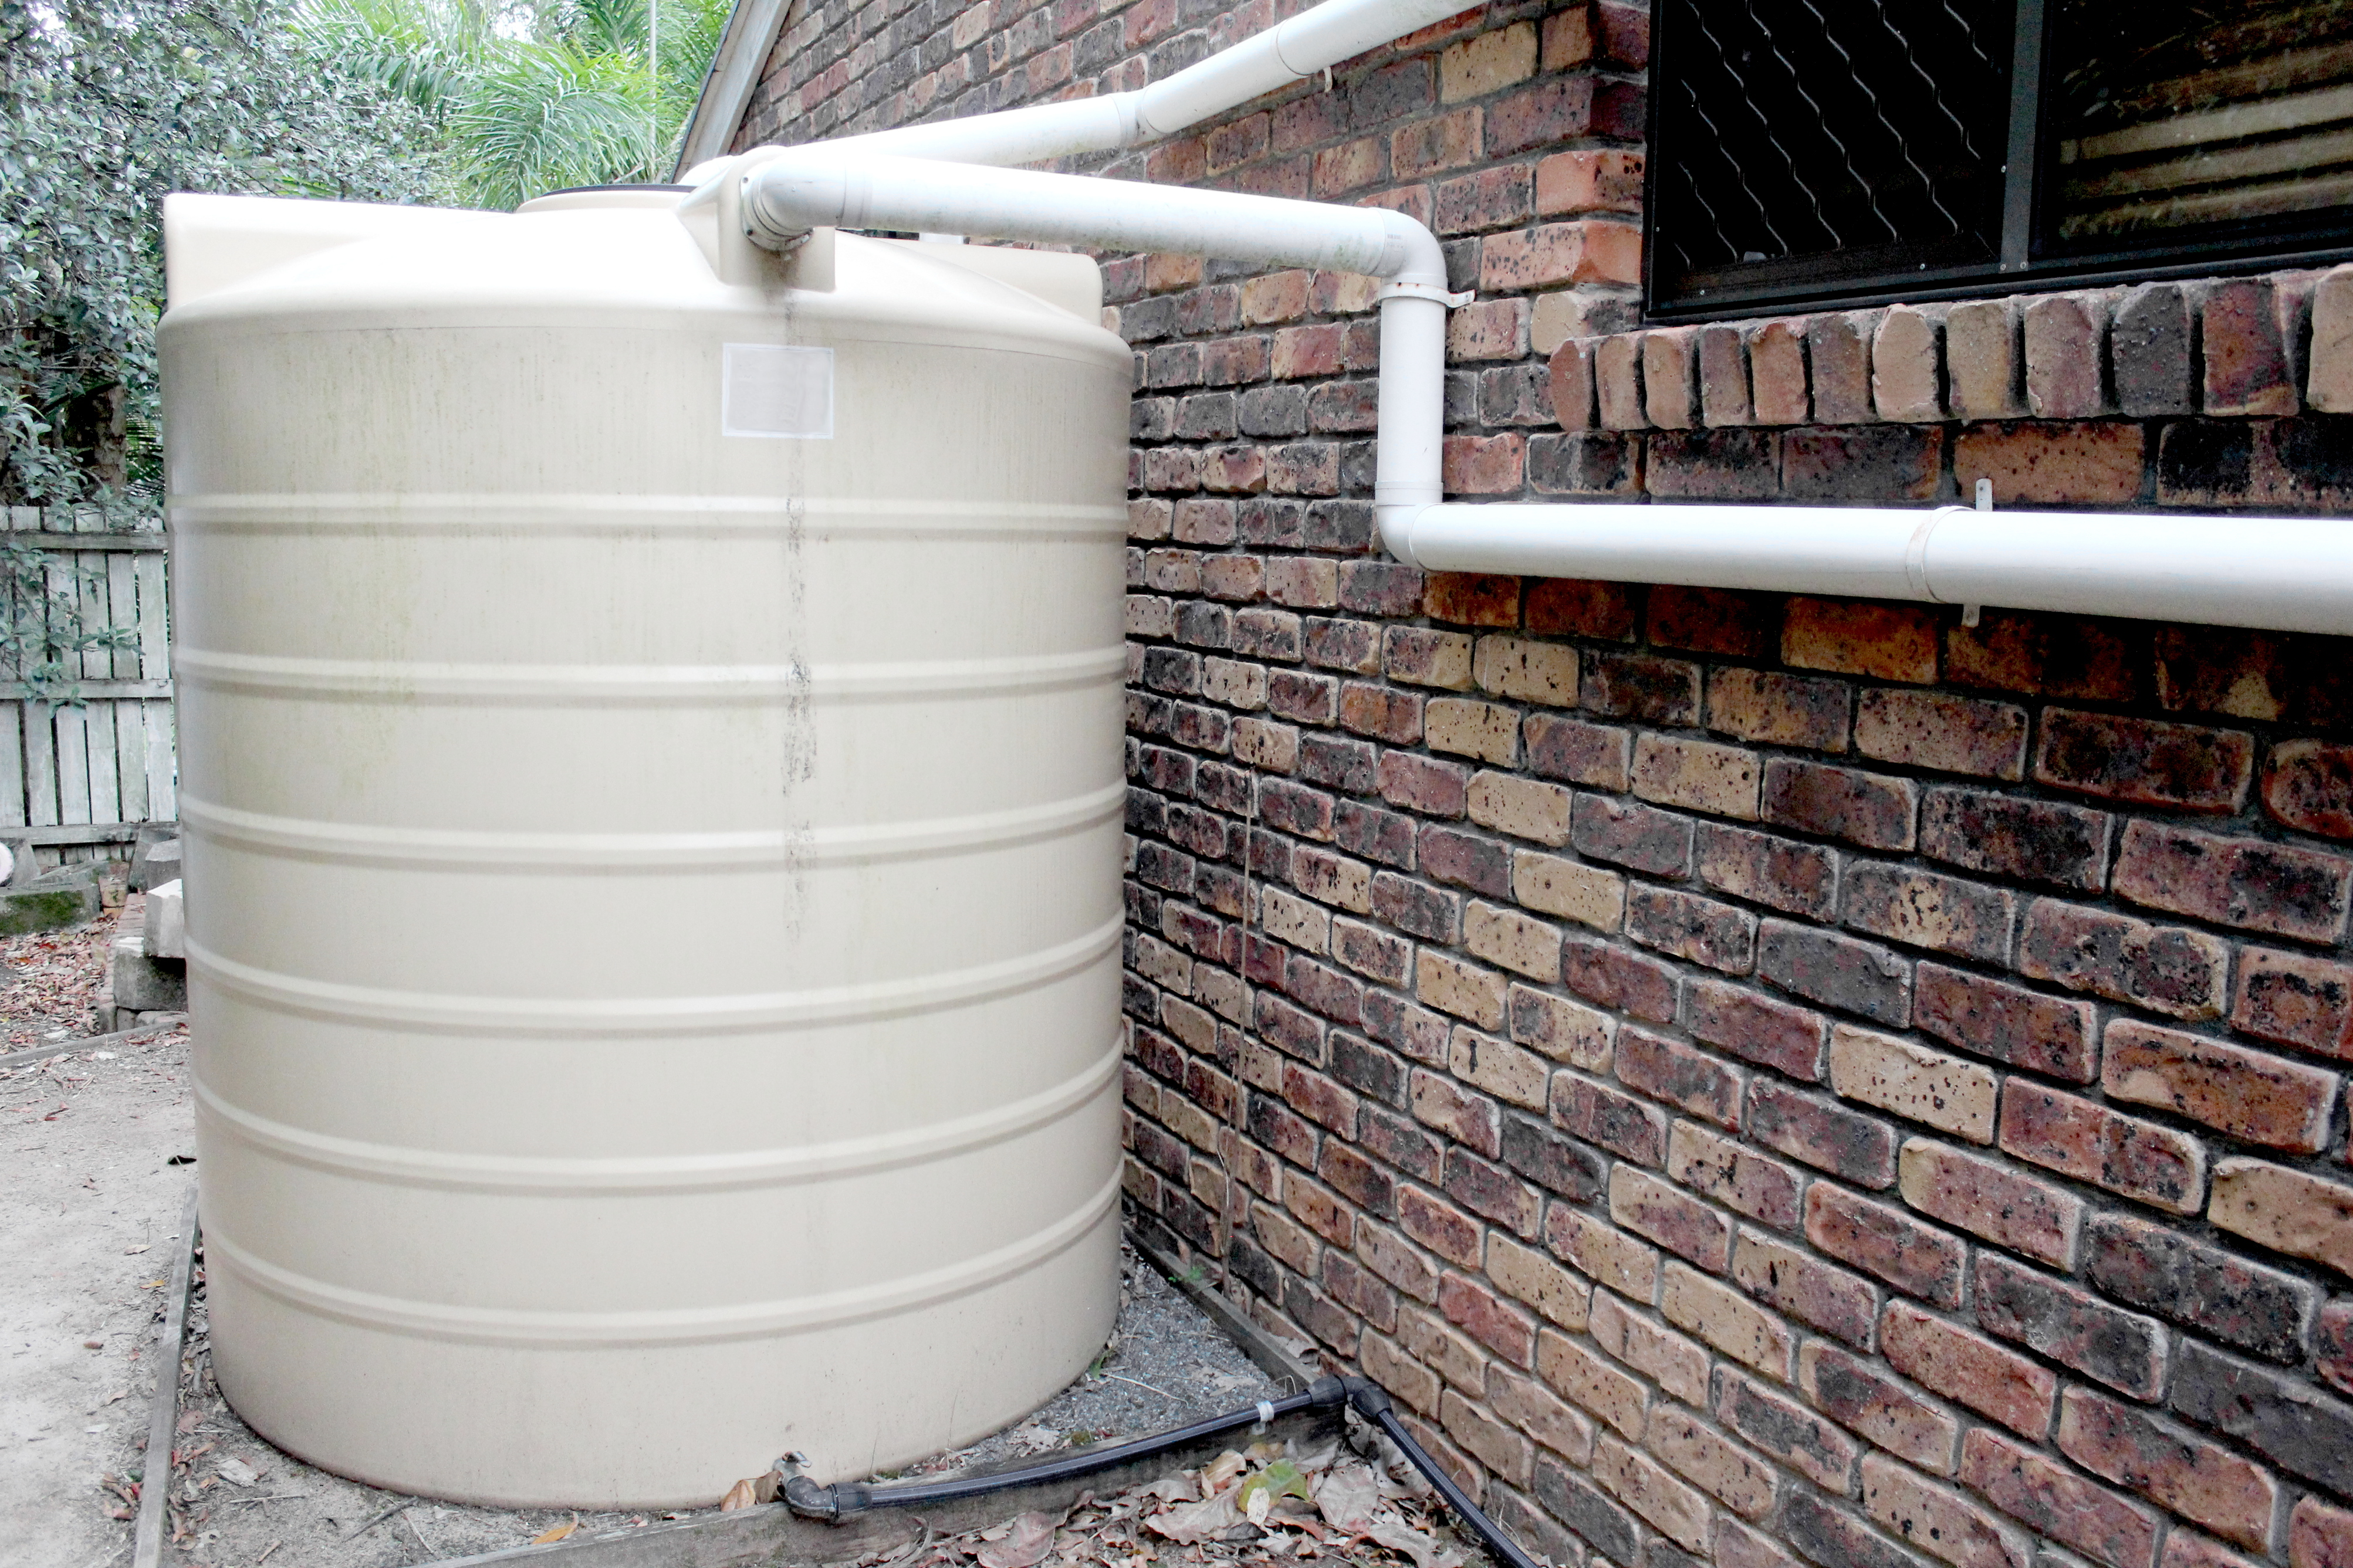 Roof-to-Garden: How to Irrigate with Rainwater - Modern Farmer